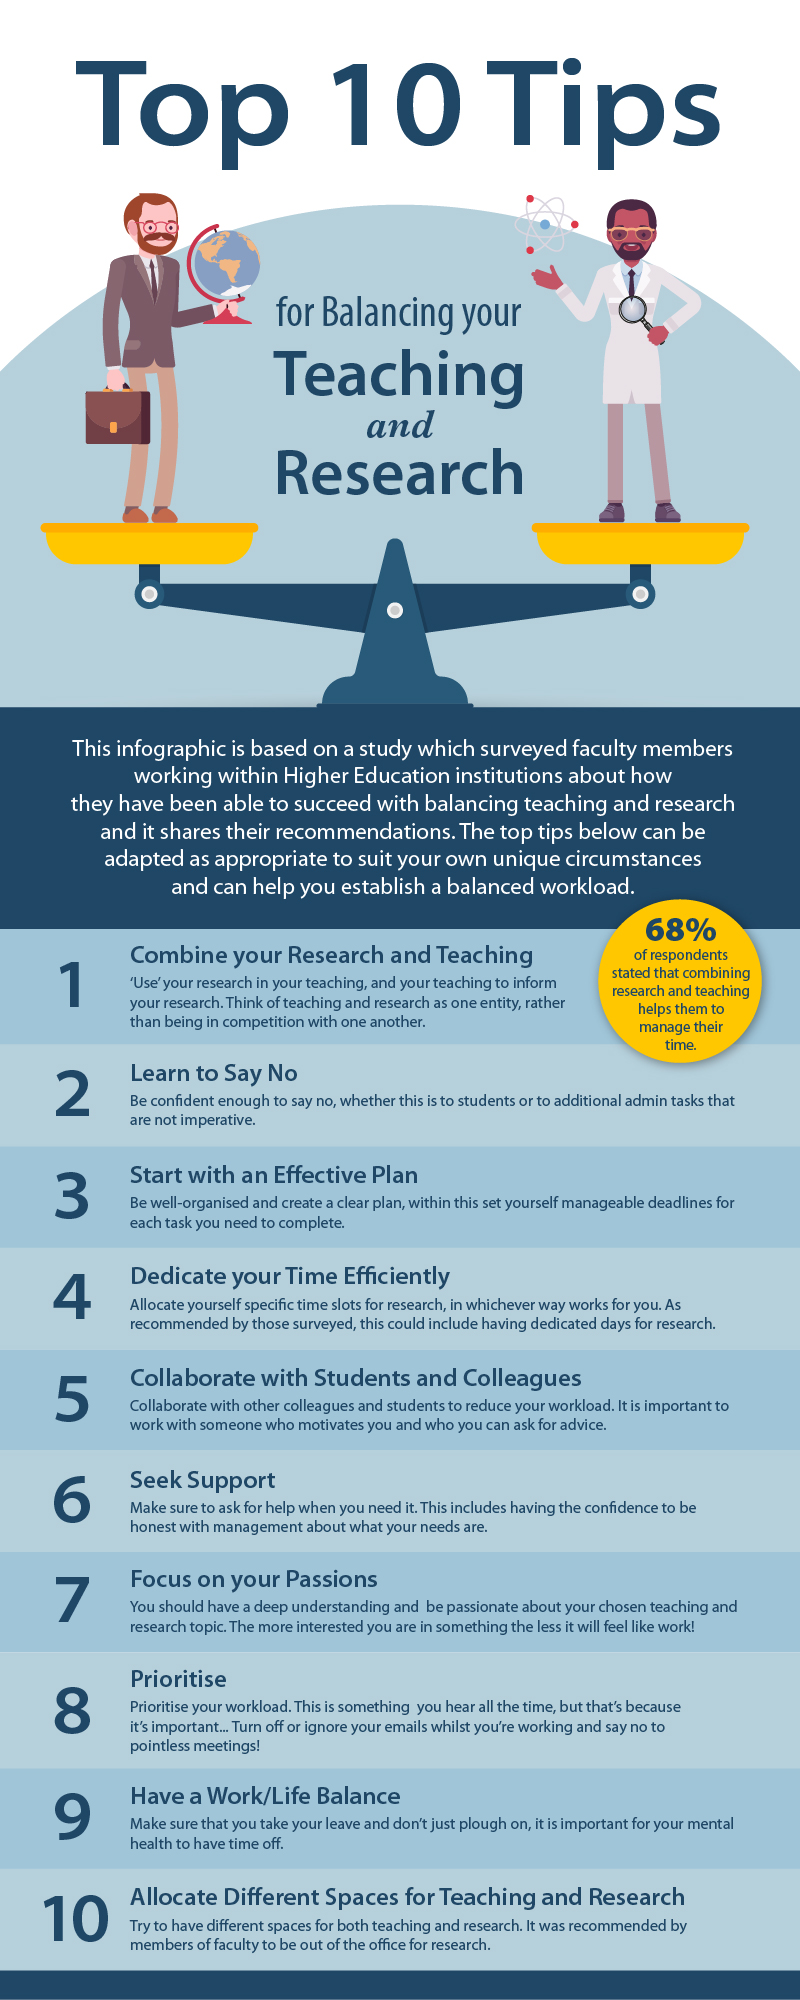 Top 10 tips for balancing your teaching and research infographic